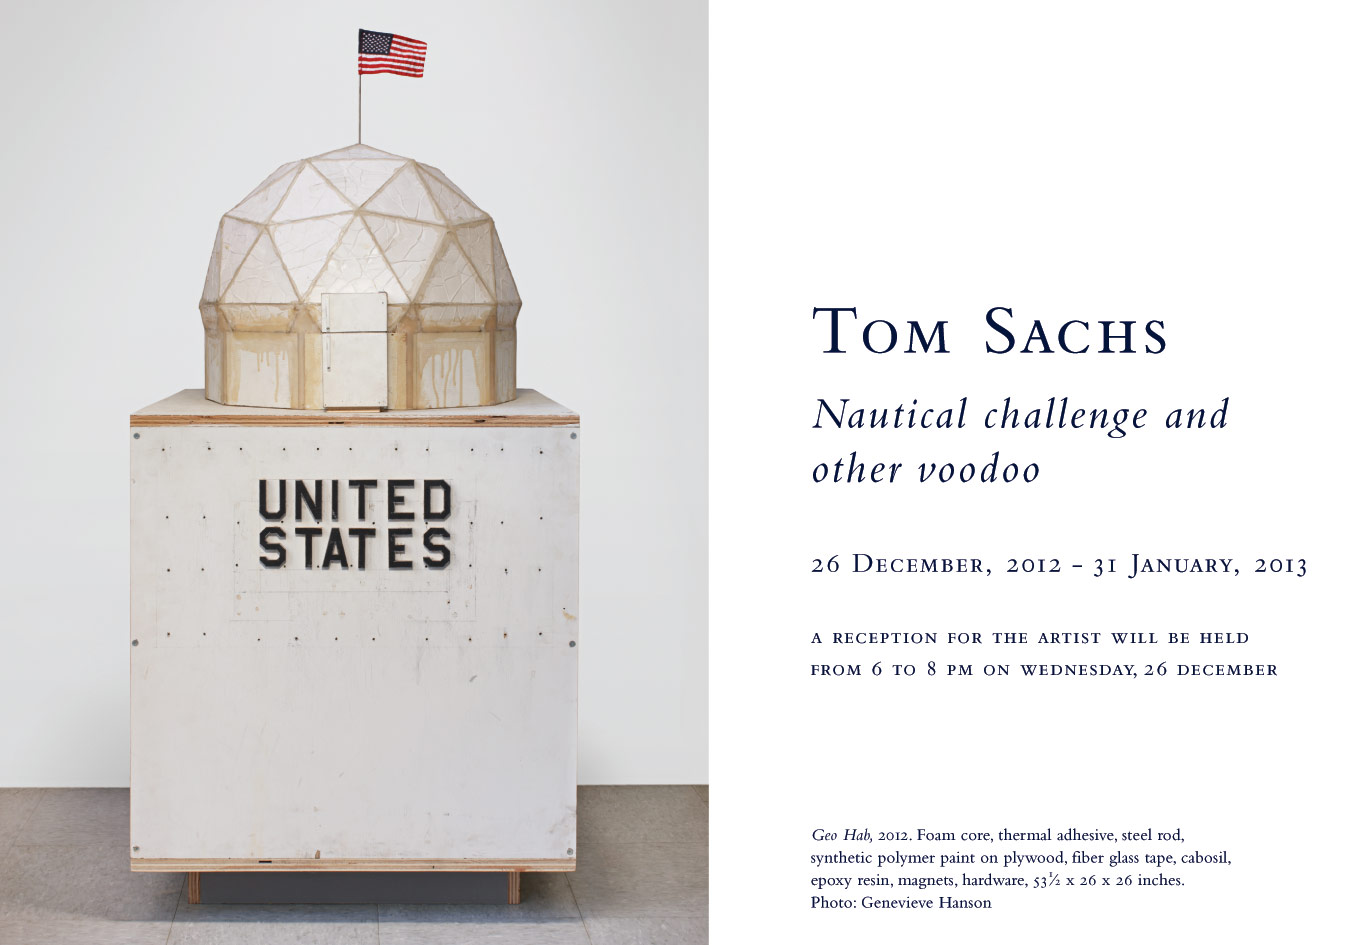 Tom Sachs, Nautical challenge and other voodoo, at the Baldwin Gallery, Aspen, December 26, 2012 – January 31, 2013